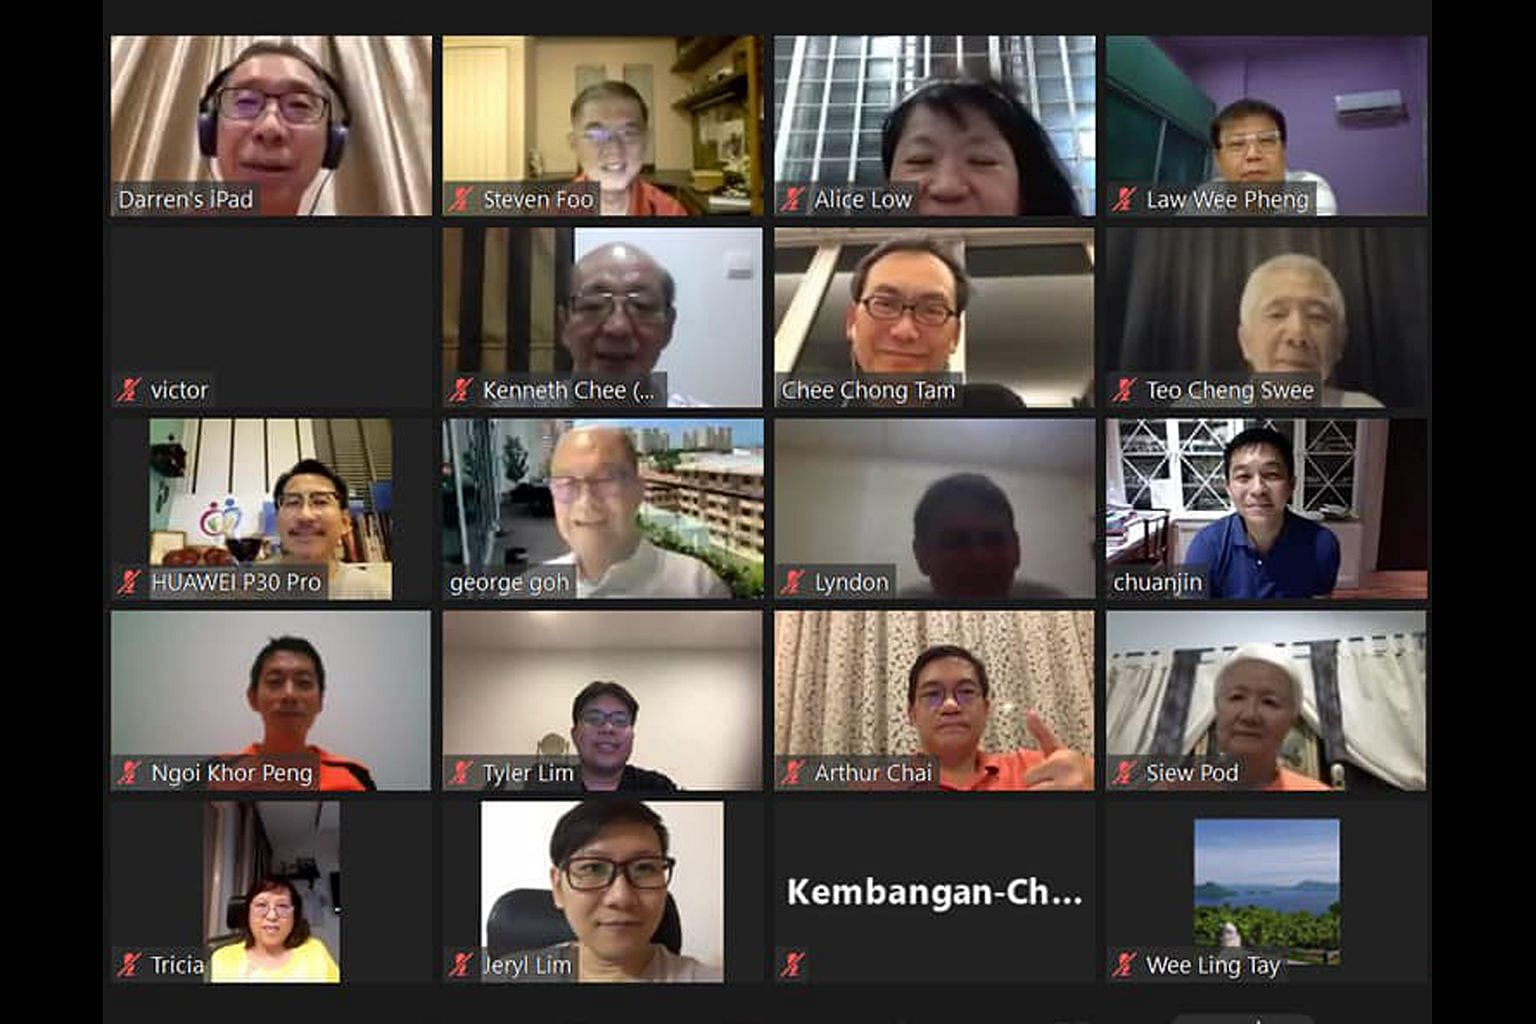 Parliament Speaker Tan Chuan-Jin (right), MP for Marine Parade GRC, holding an online meeting with community leaders in his ward. Weekly Meet-the-People Sessions have also switched to a remote format.